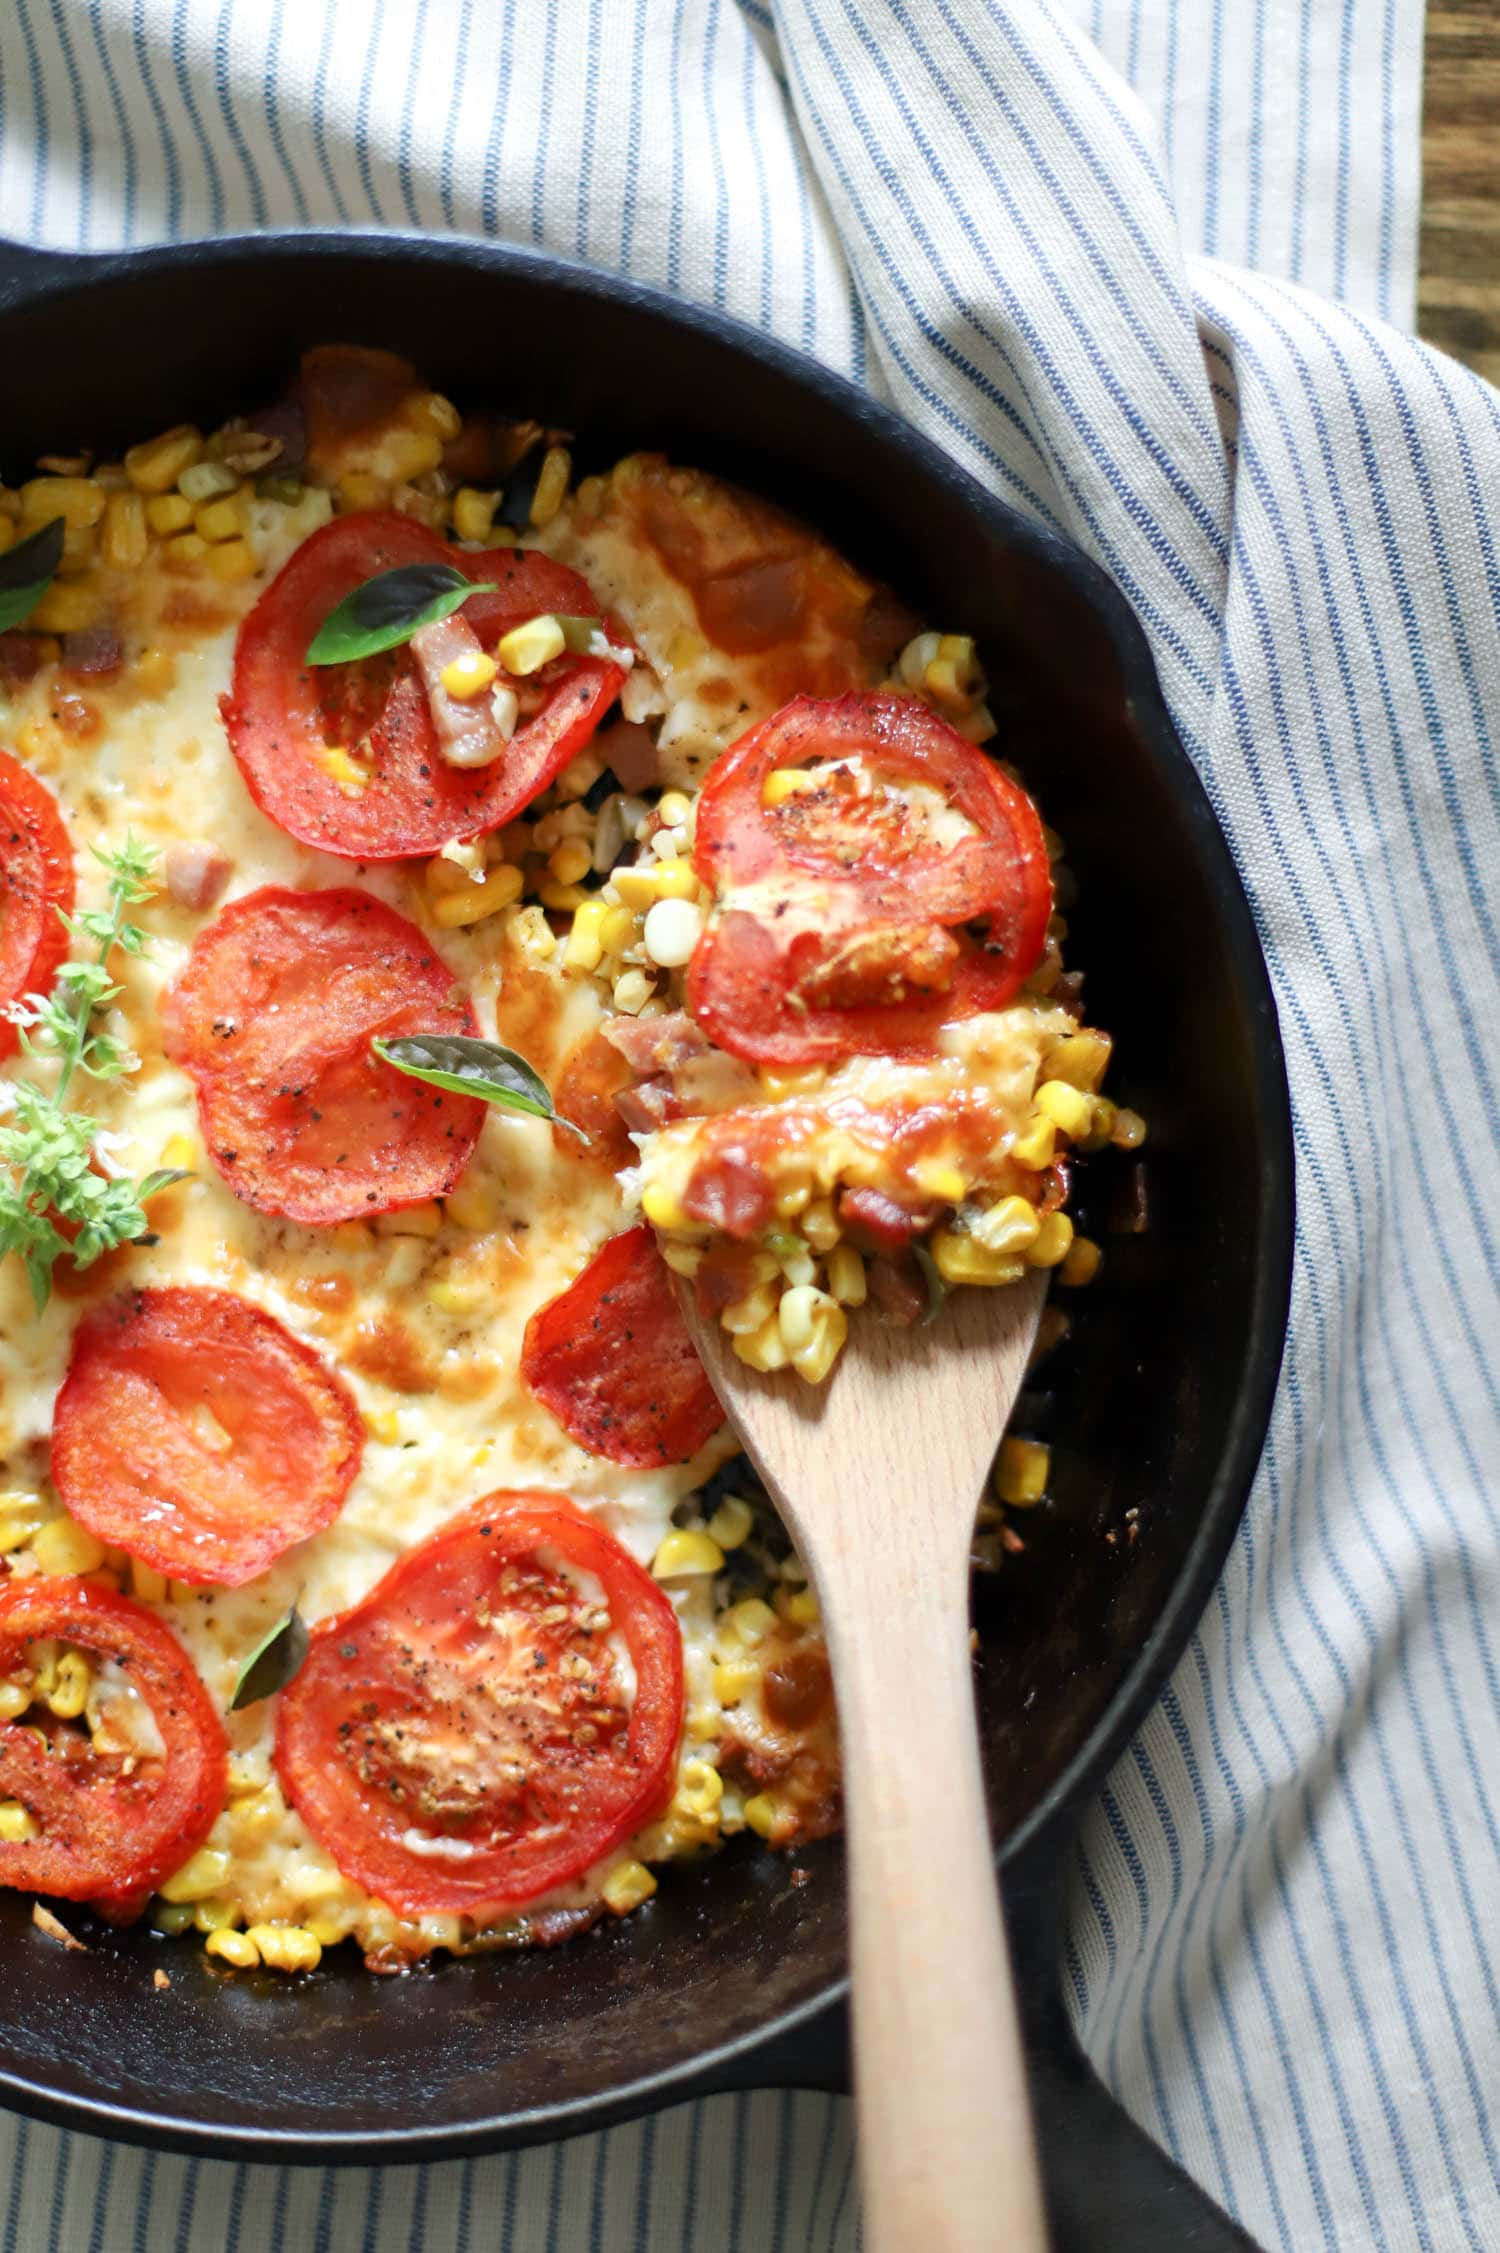 skillet of tomatoes and corn with wooden spoon